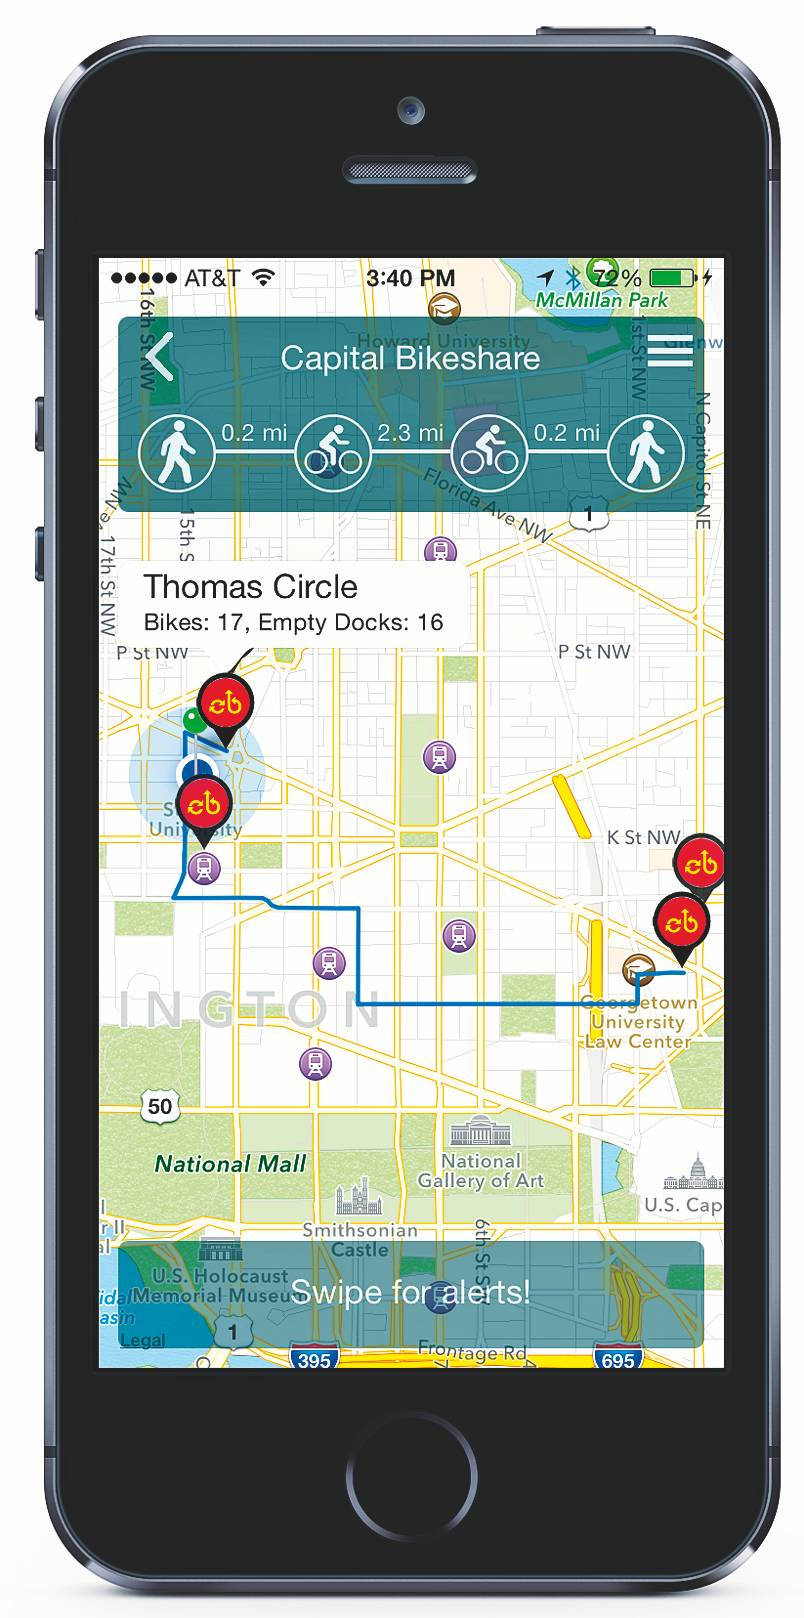 The app RideScout helps you find the quickest route to your destination.